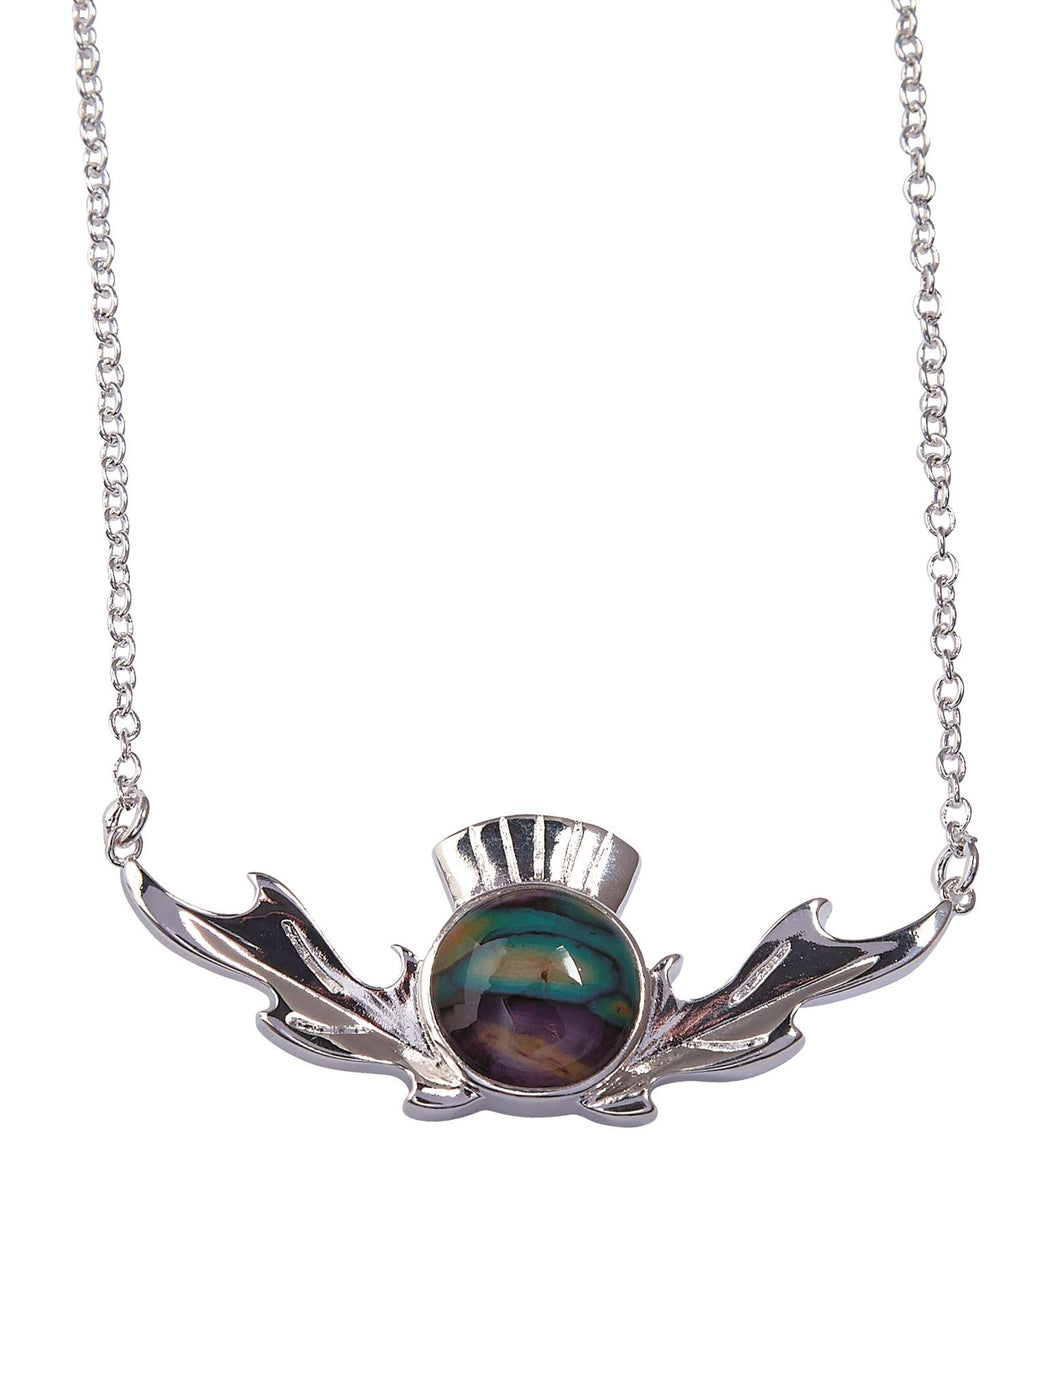 Thistle Heathergem Necklace | The Scottish Company | Toronto